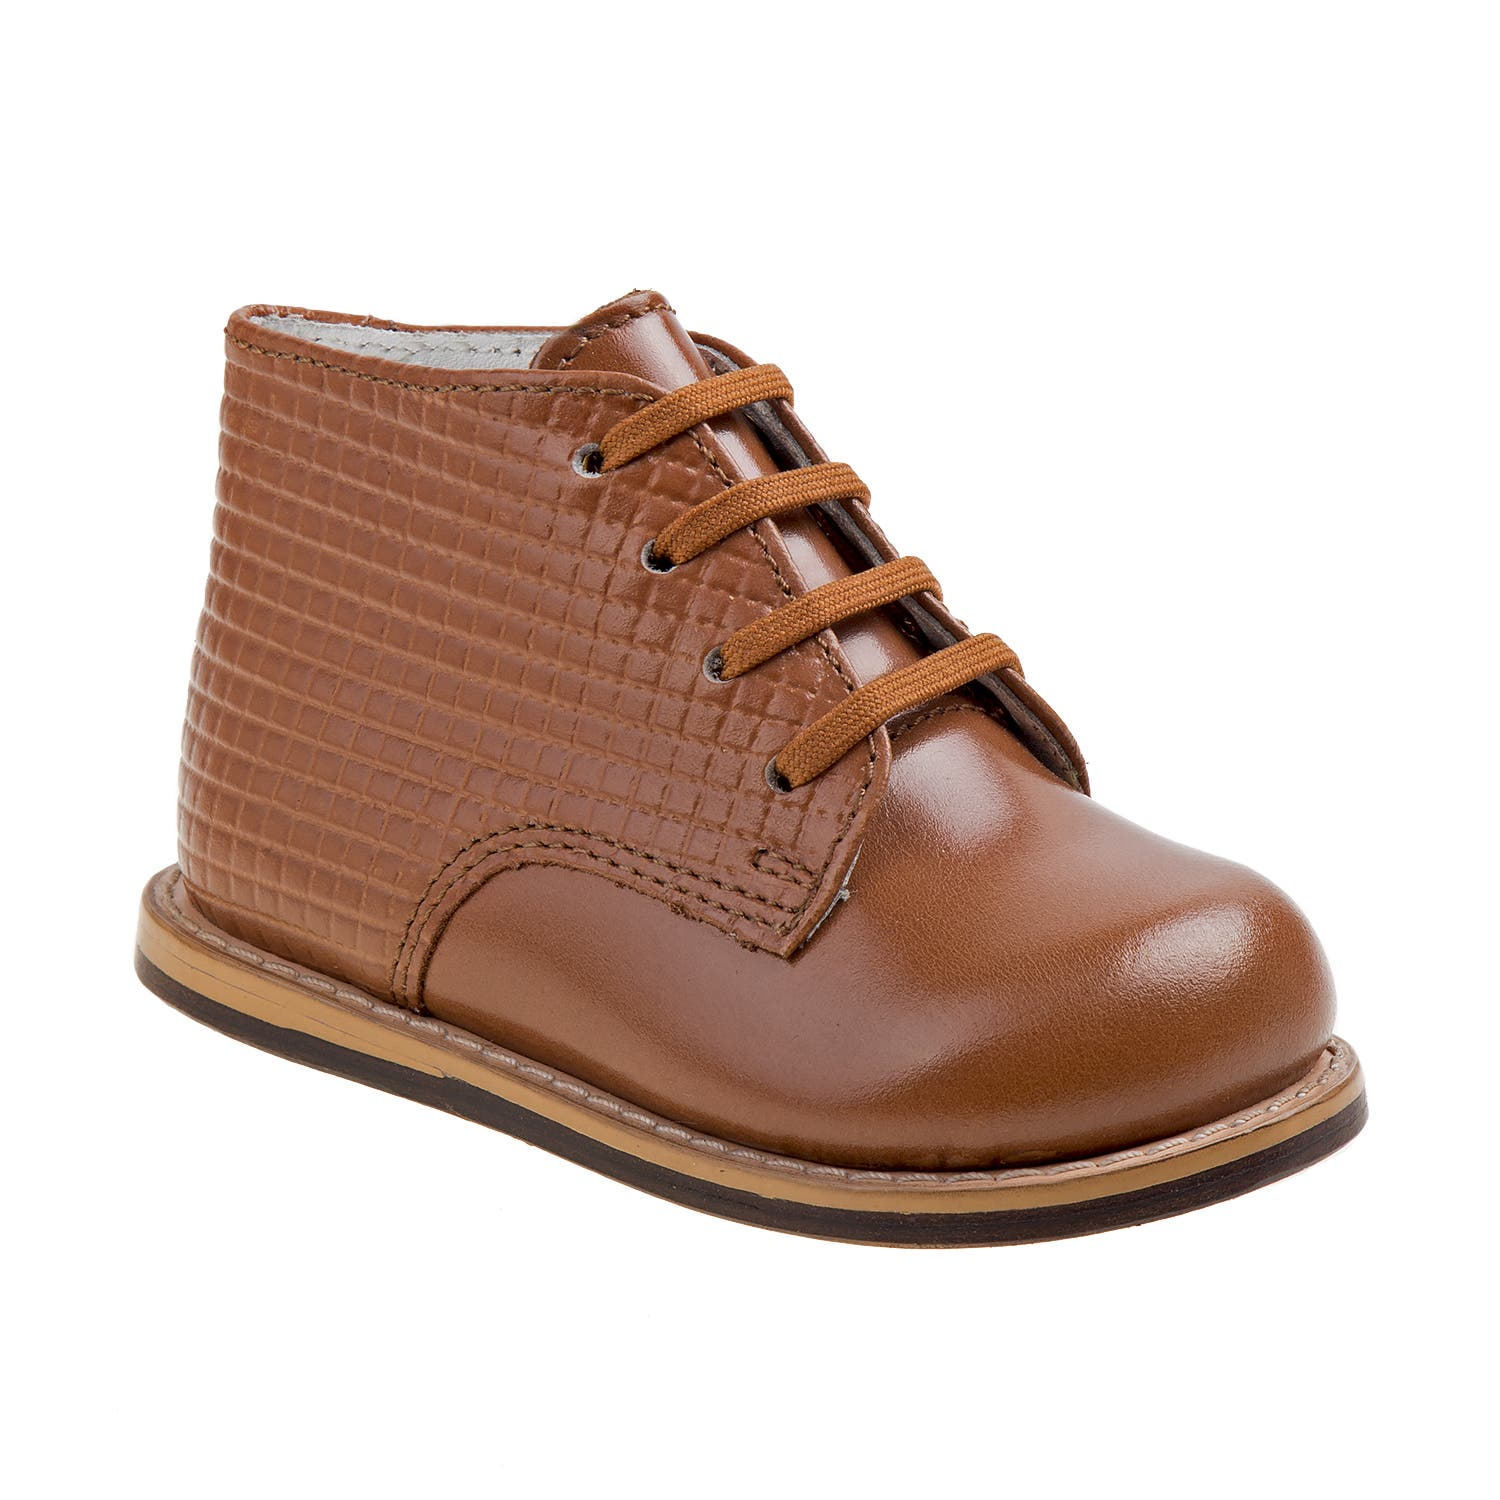 dress shoes for less overstock